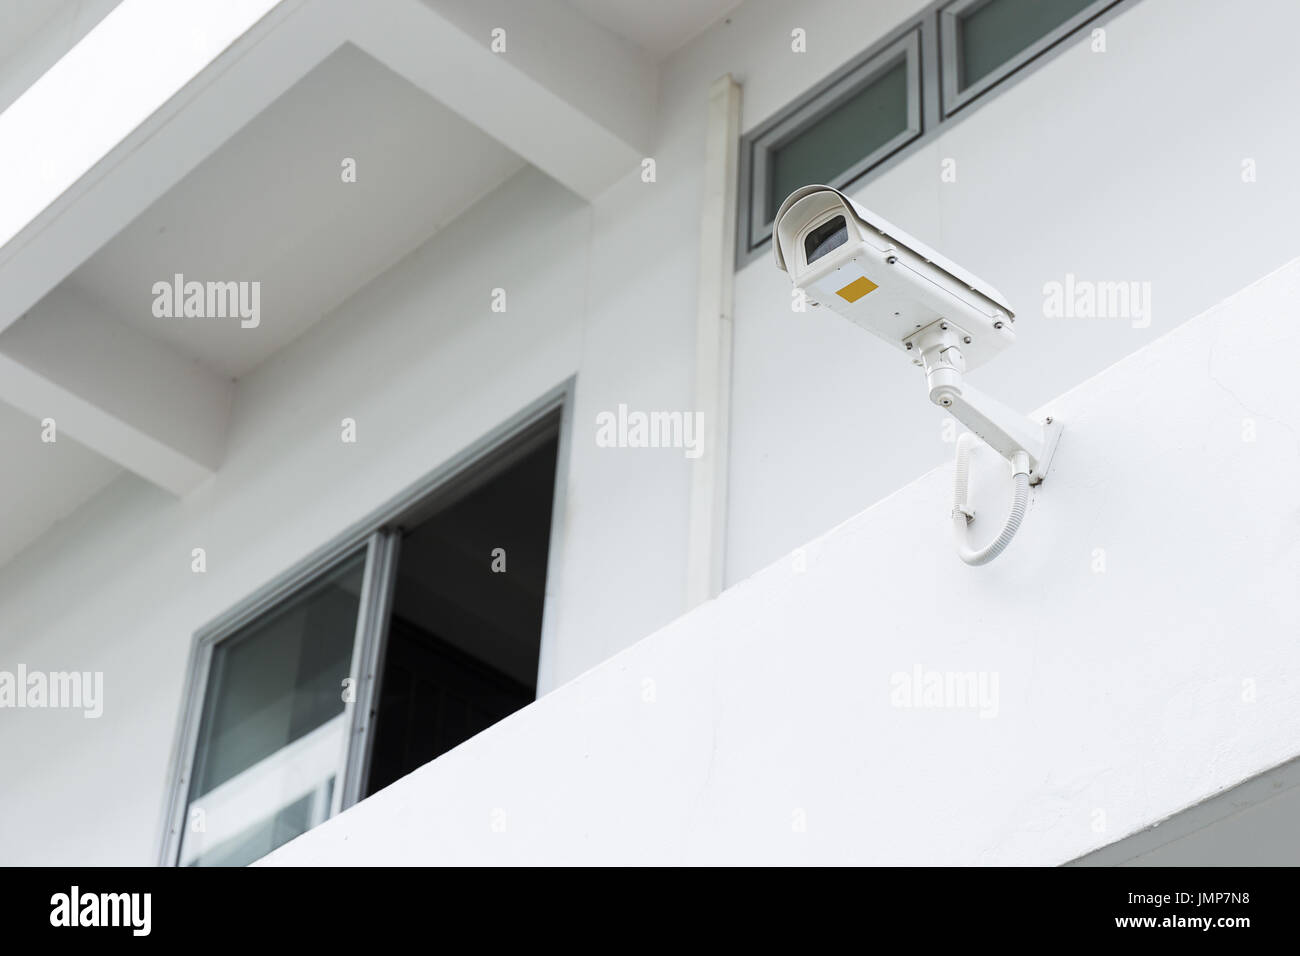 CCTV camera on white building for security - Stock Image